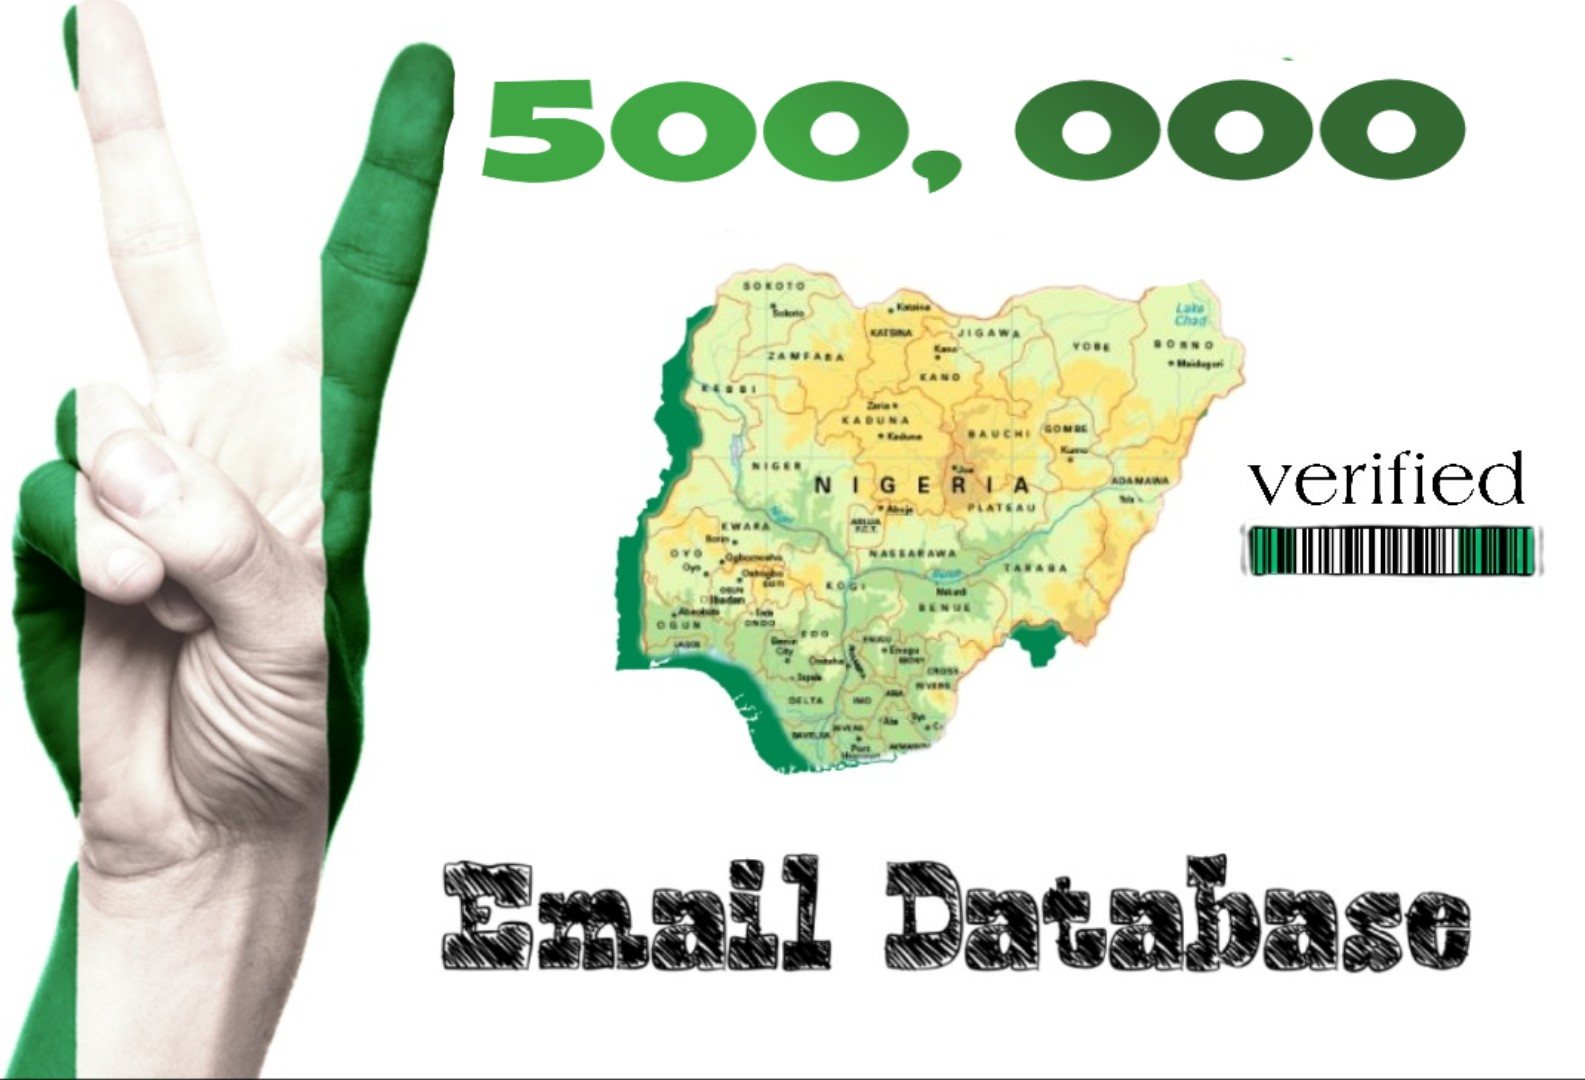 500k verified Nigerian emails for marketing